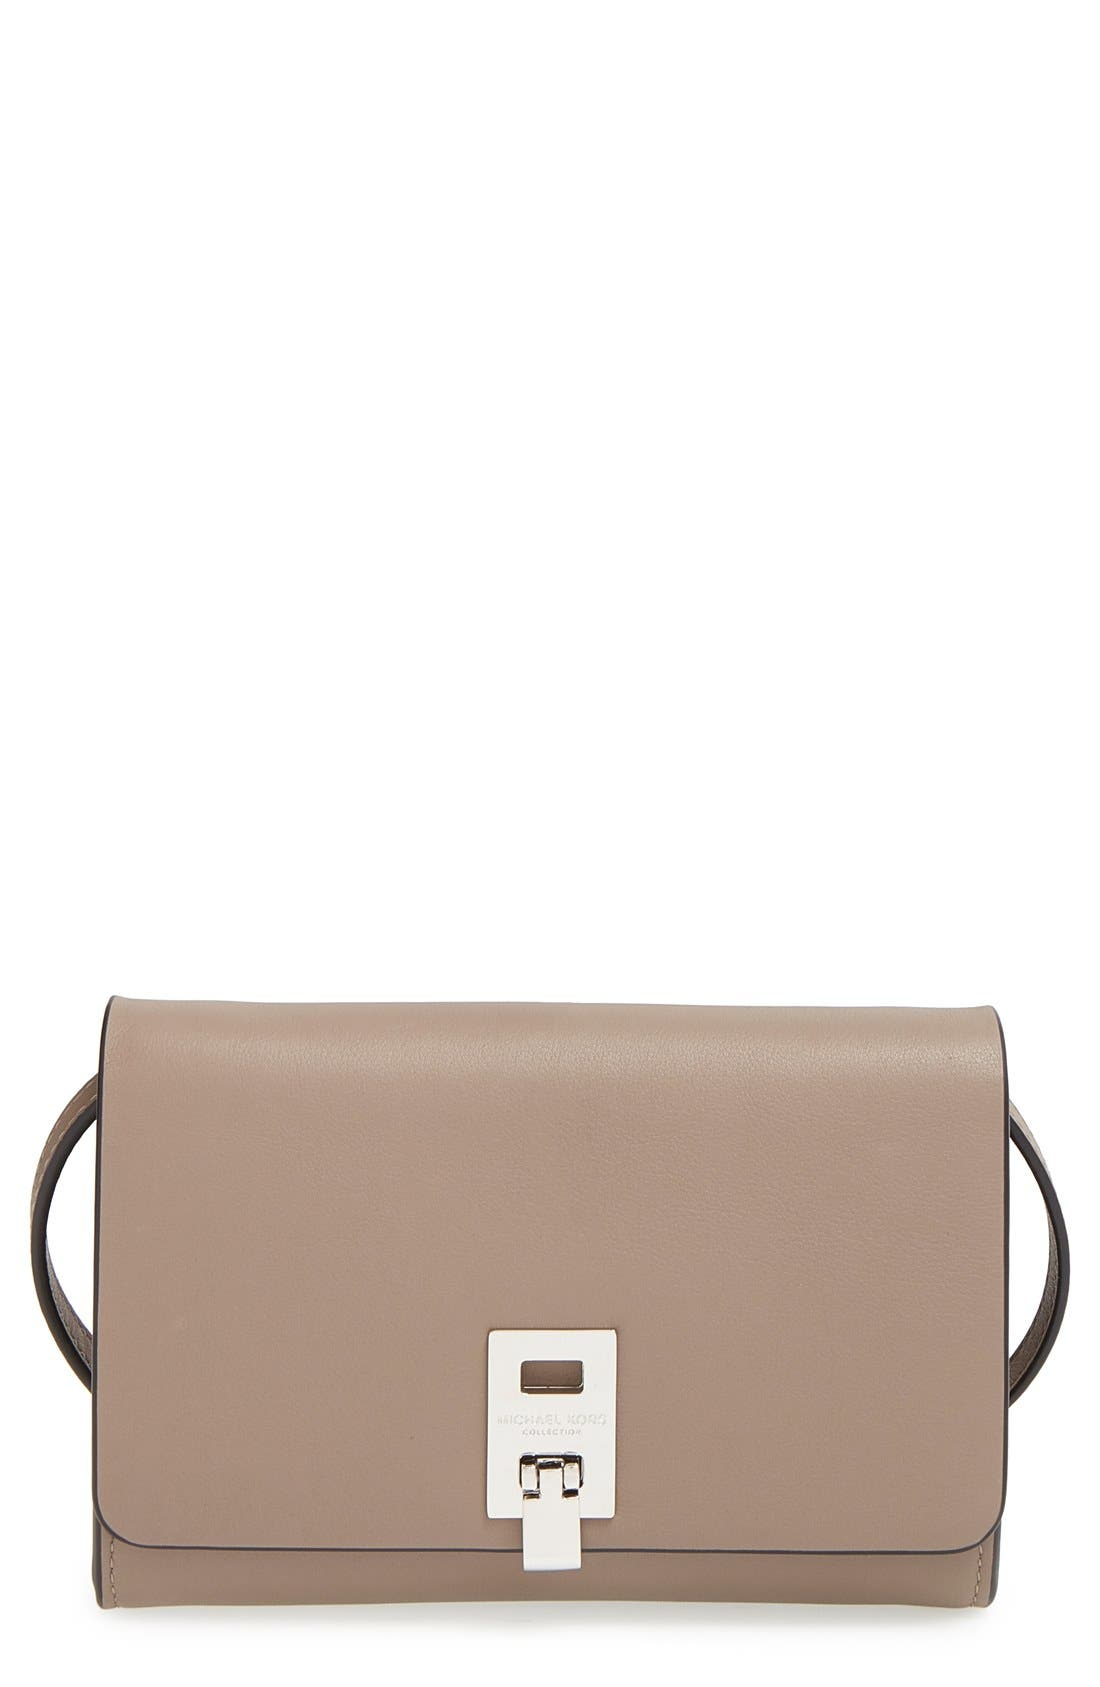 Michael Kors 'Medium Miranda' Convertible Clutch